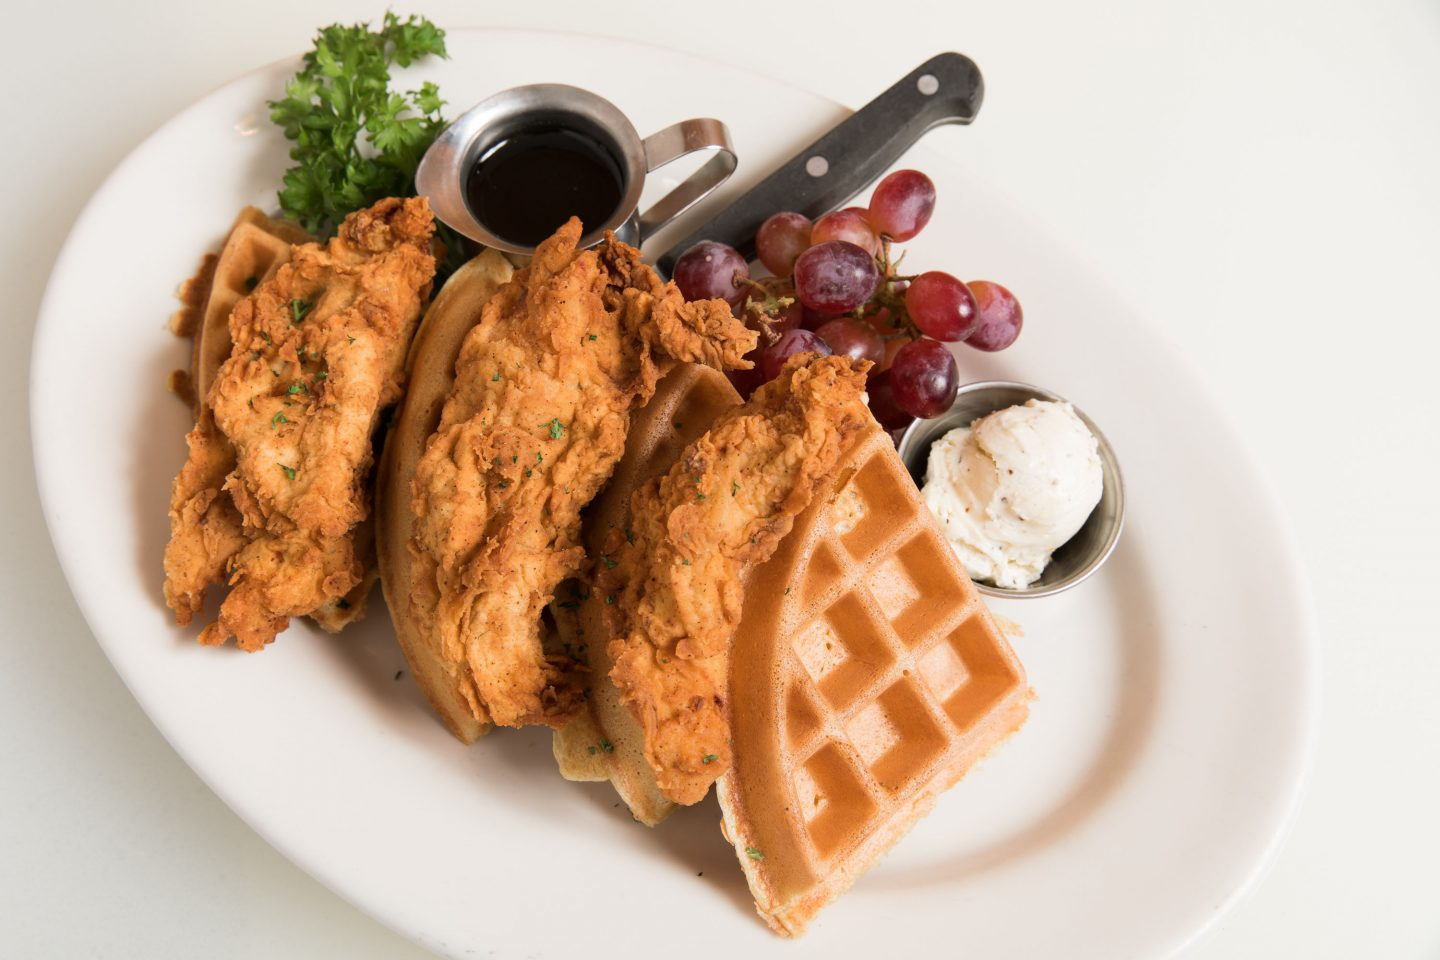 Looking for fried chicken atop a waffle? Look no further than Mity Nice Grill, the best restaurant ever to be located inside a mall.